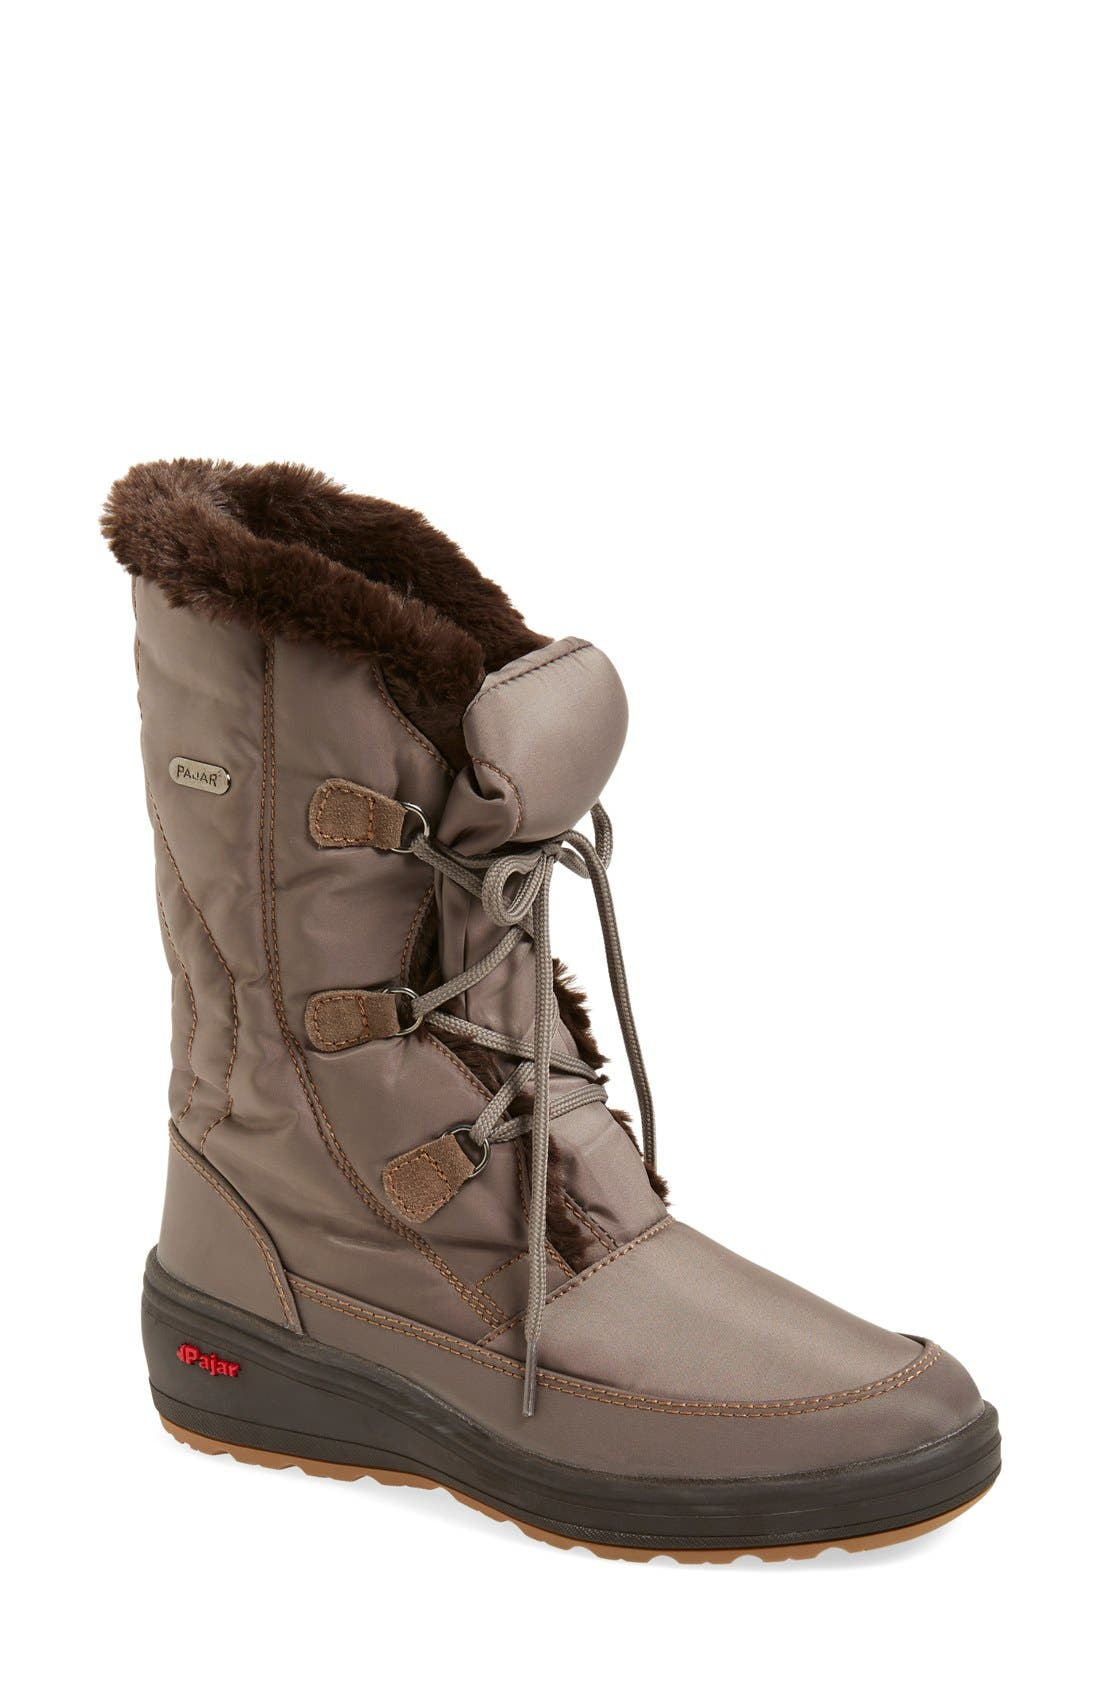 Alternate Image 1 Selected - Pajar 'Marcie' Waterproof Snow Boot with Faux Fur Collar (Women)